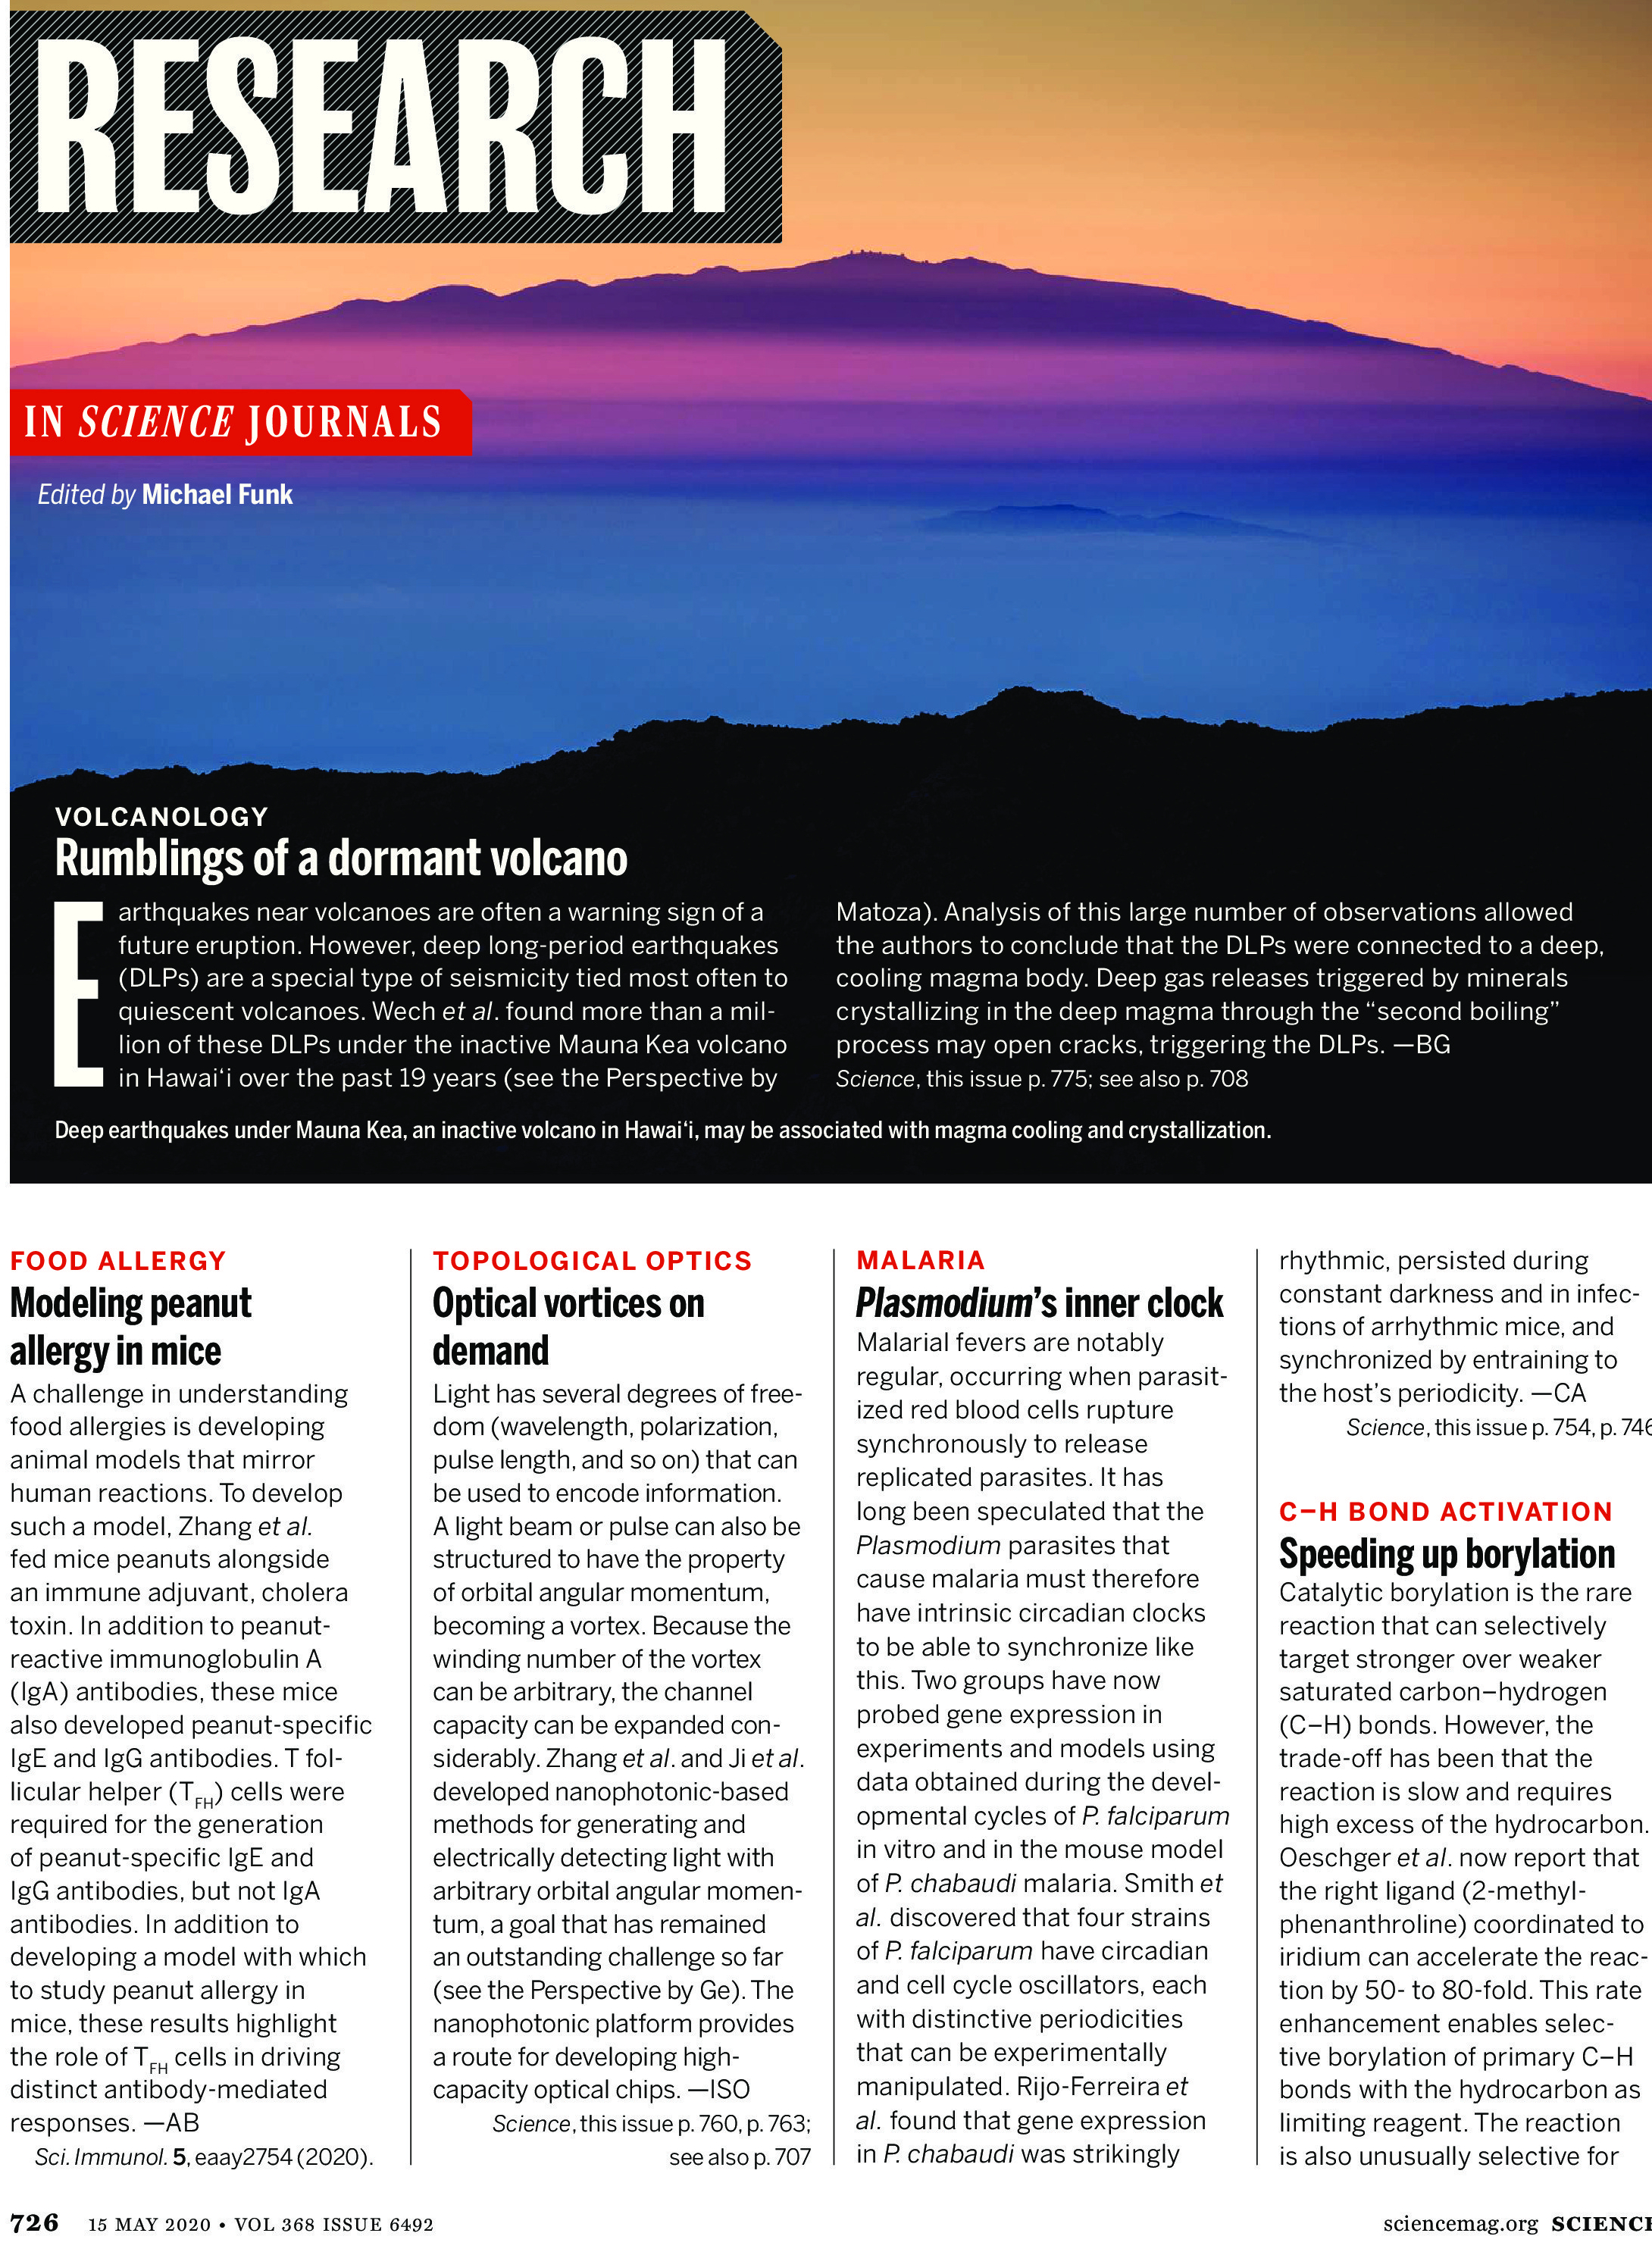 Science Magazine Research Highlights May 15 2020